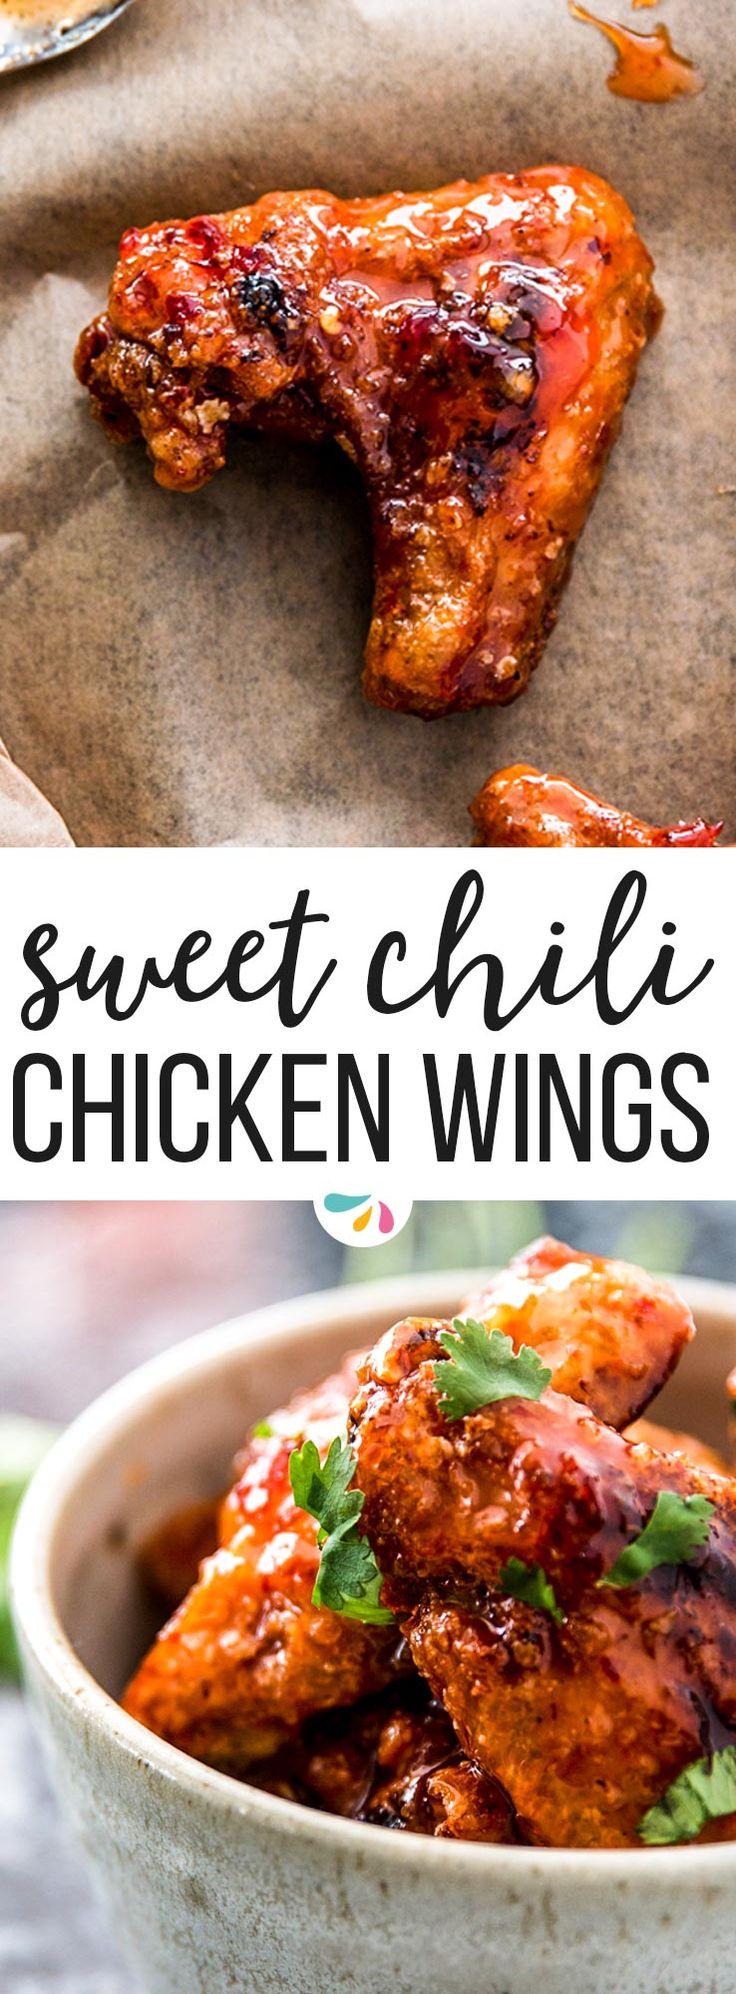 Sticky Sweet Chili Chicken Wings are easy, crispy fried wings with the best sticky glaze! This recipe is perfect for game day, super bowl parties or for any special dinner you might have coming up! These are the best - and you can customize them to make them as hot and spicy as you like. | #recipes #chicken #chickenrecipes #gameday #gamedayfood #football #footballfood #partyfood #easyrecipe